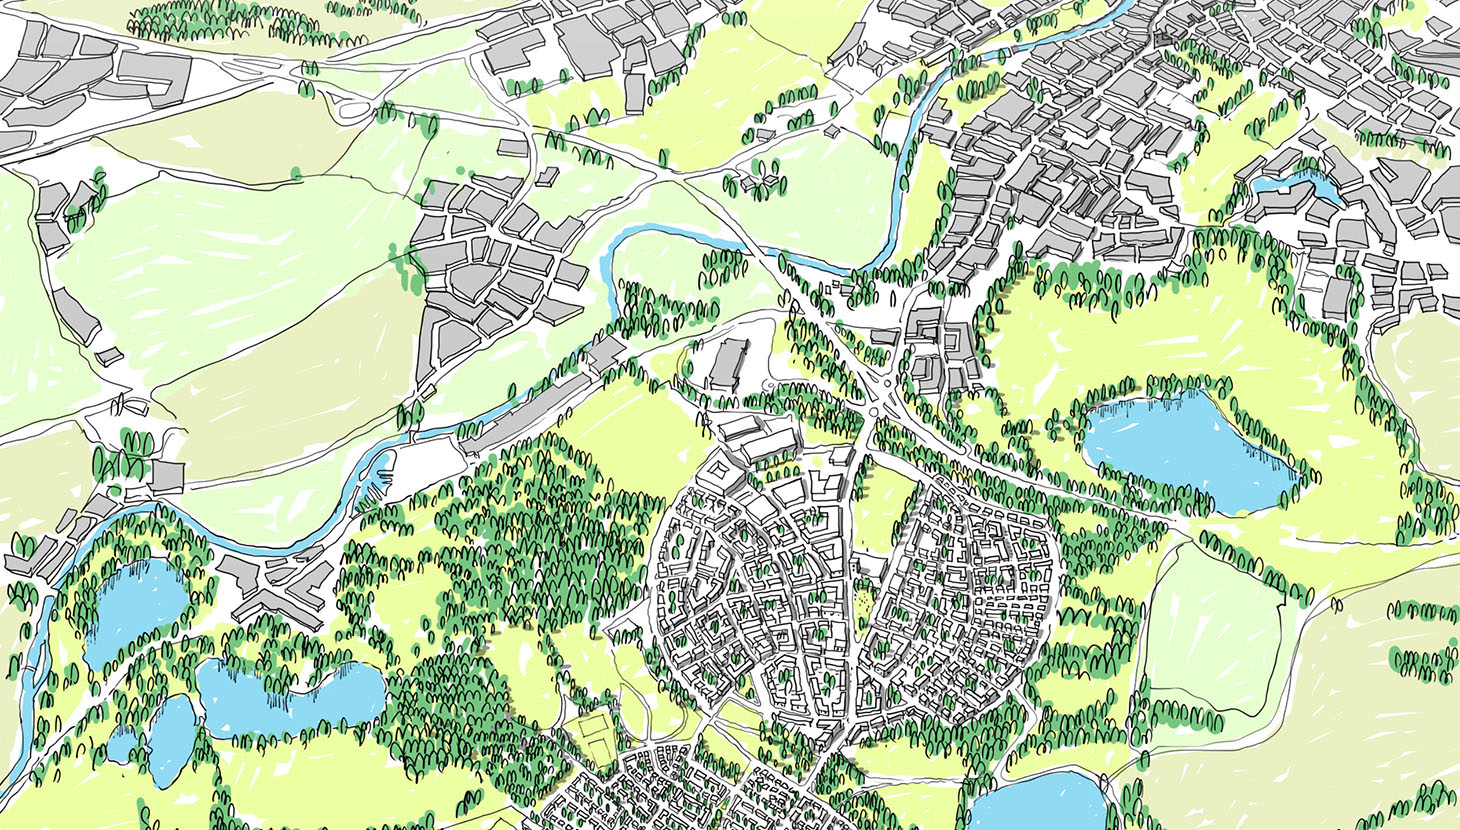 Uxcester - Aerial Perspective (2)